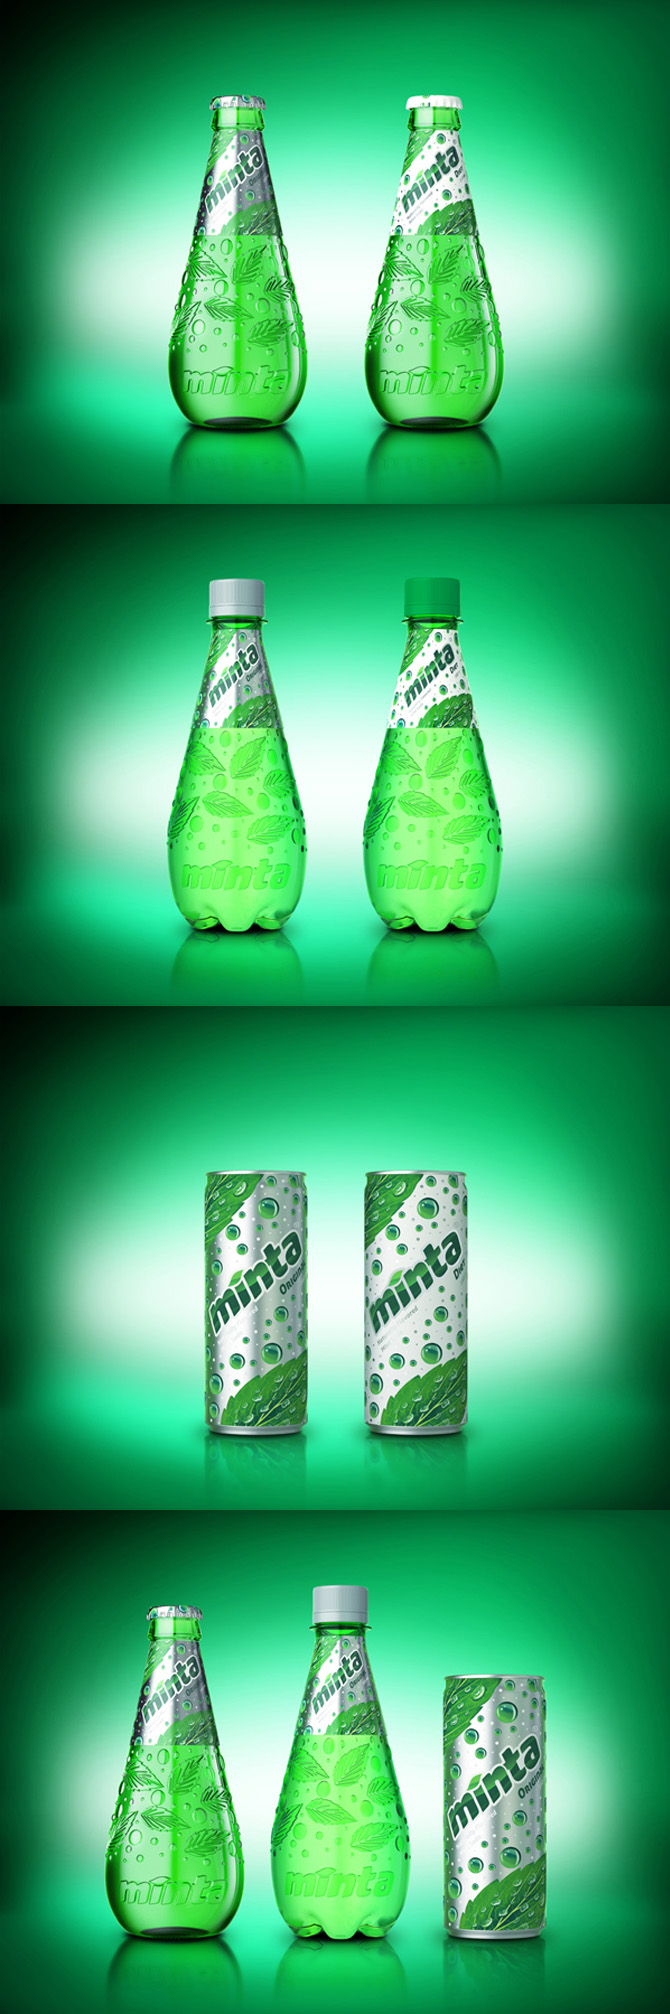 minta soft drink packaging design